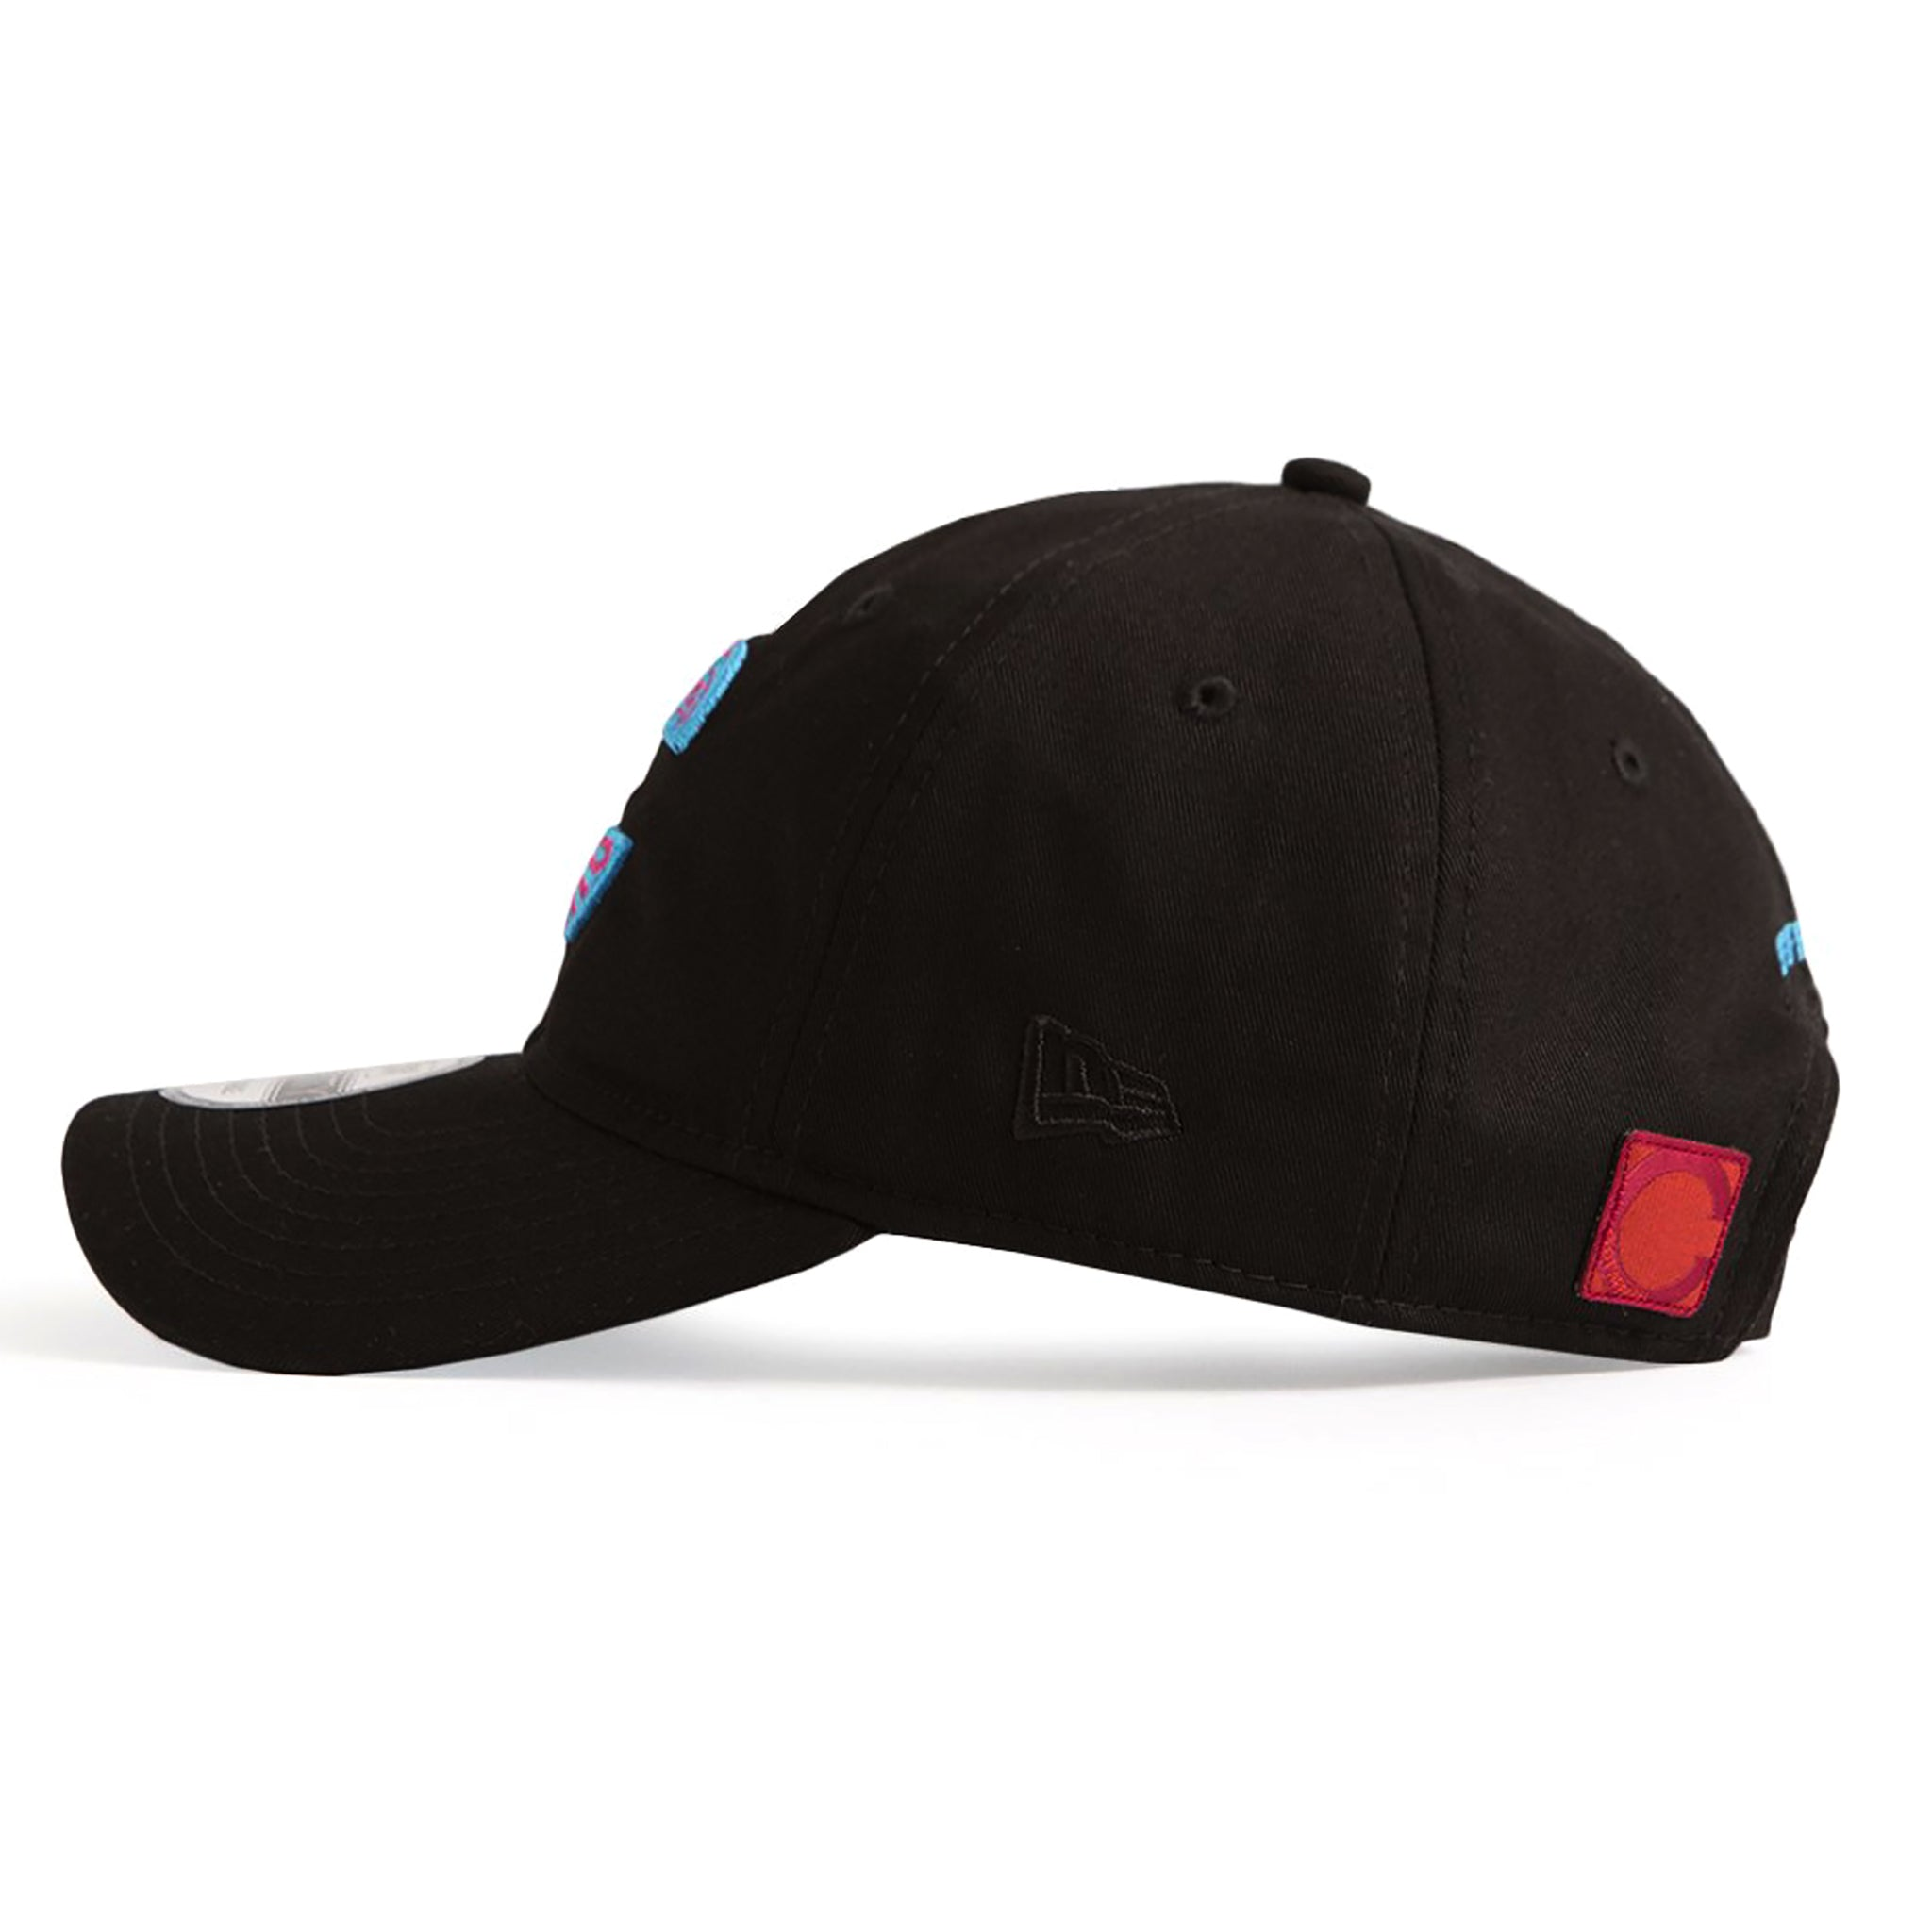 Clot Out Of This World Loop Cap Black